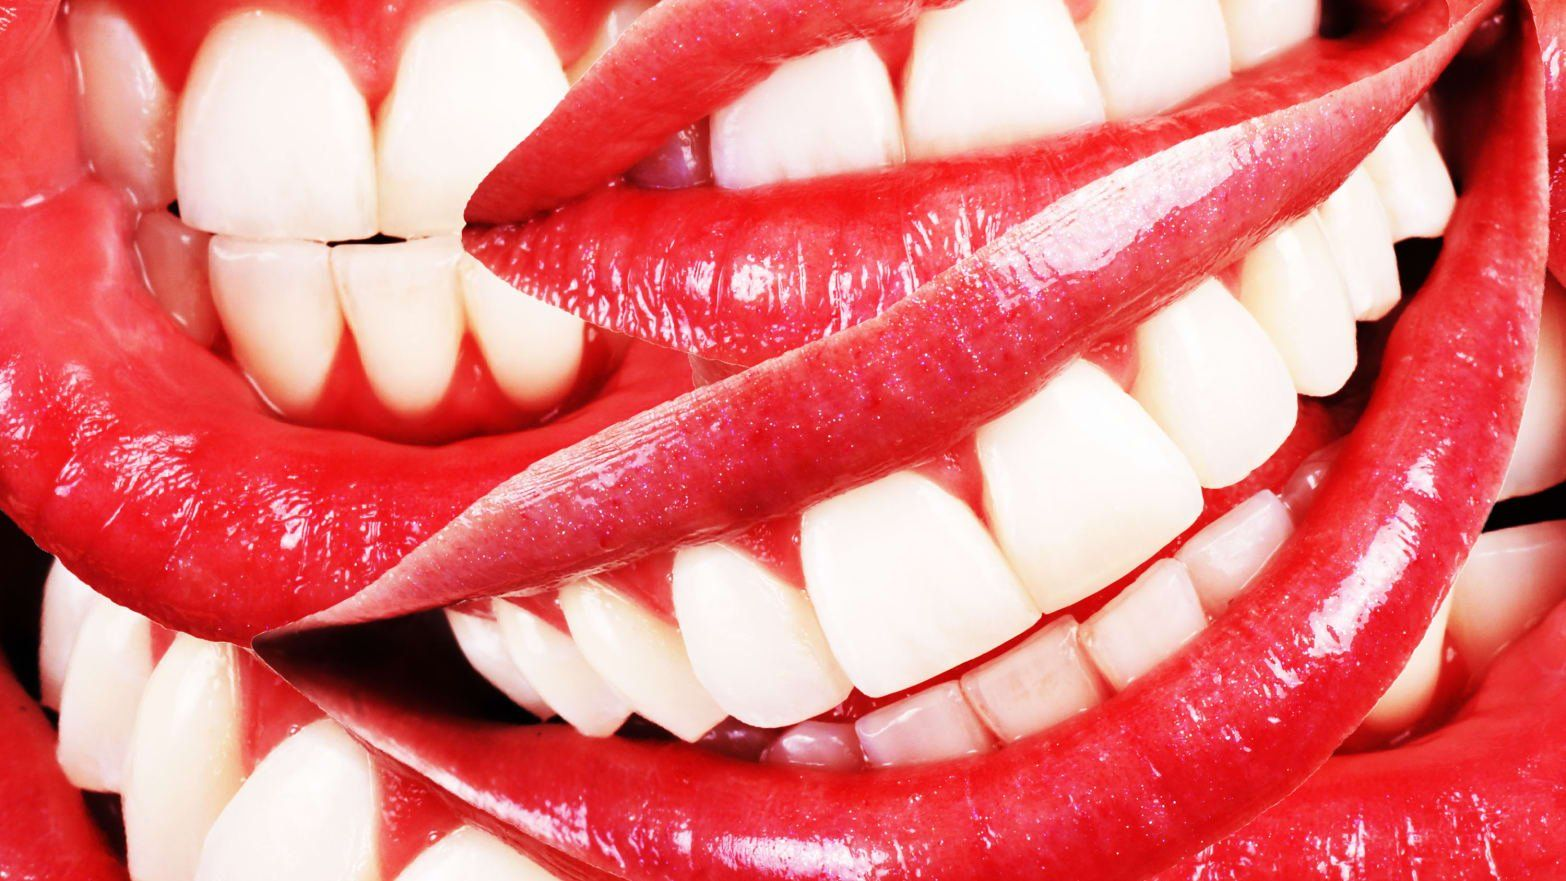 Diy teethstraightening leaves dentists and some consumers